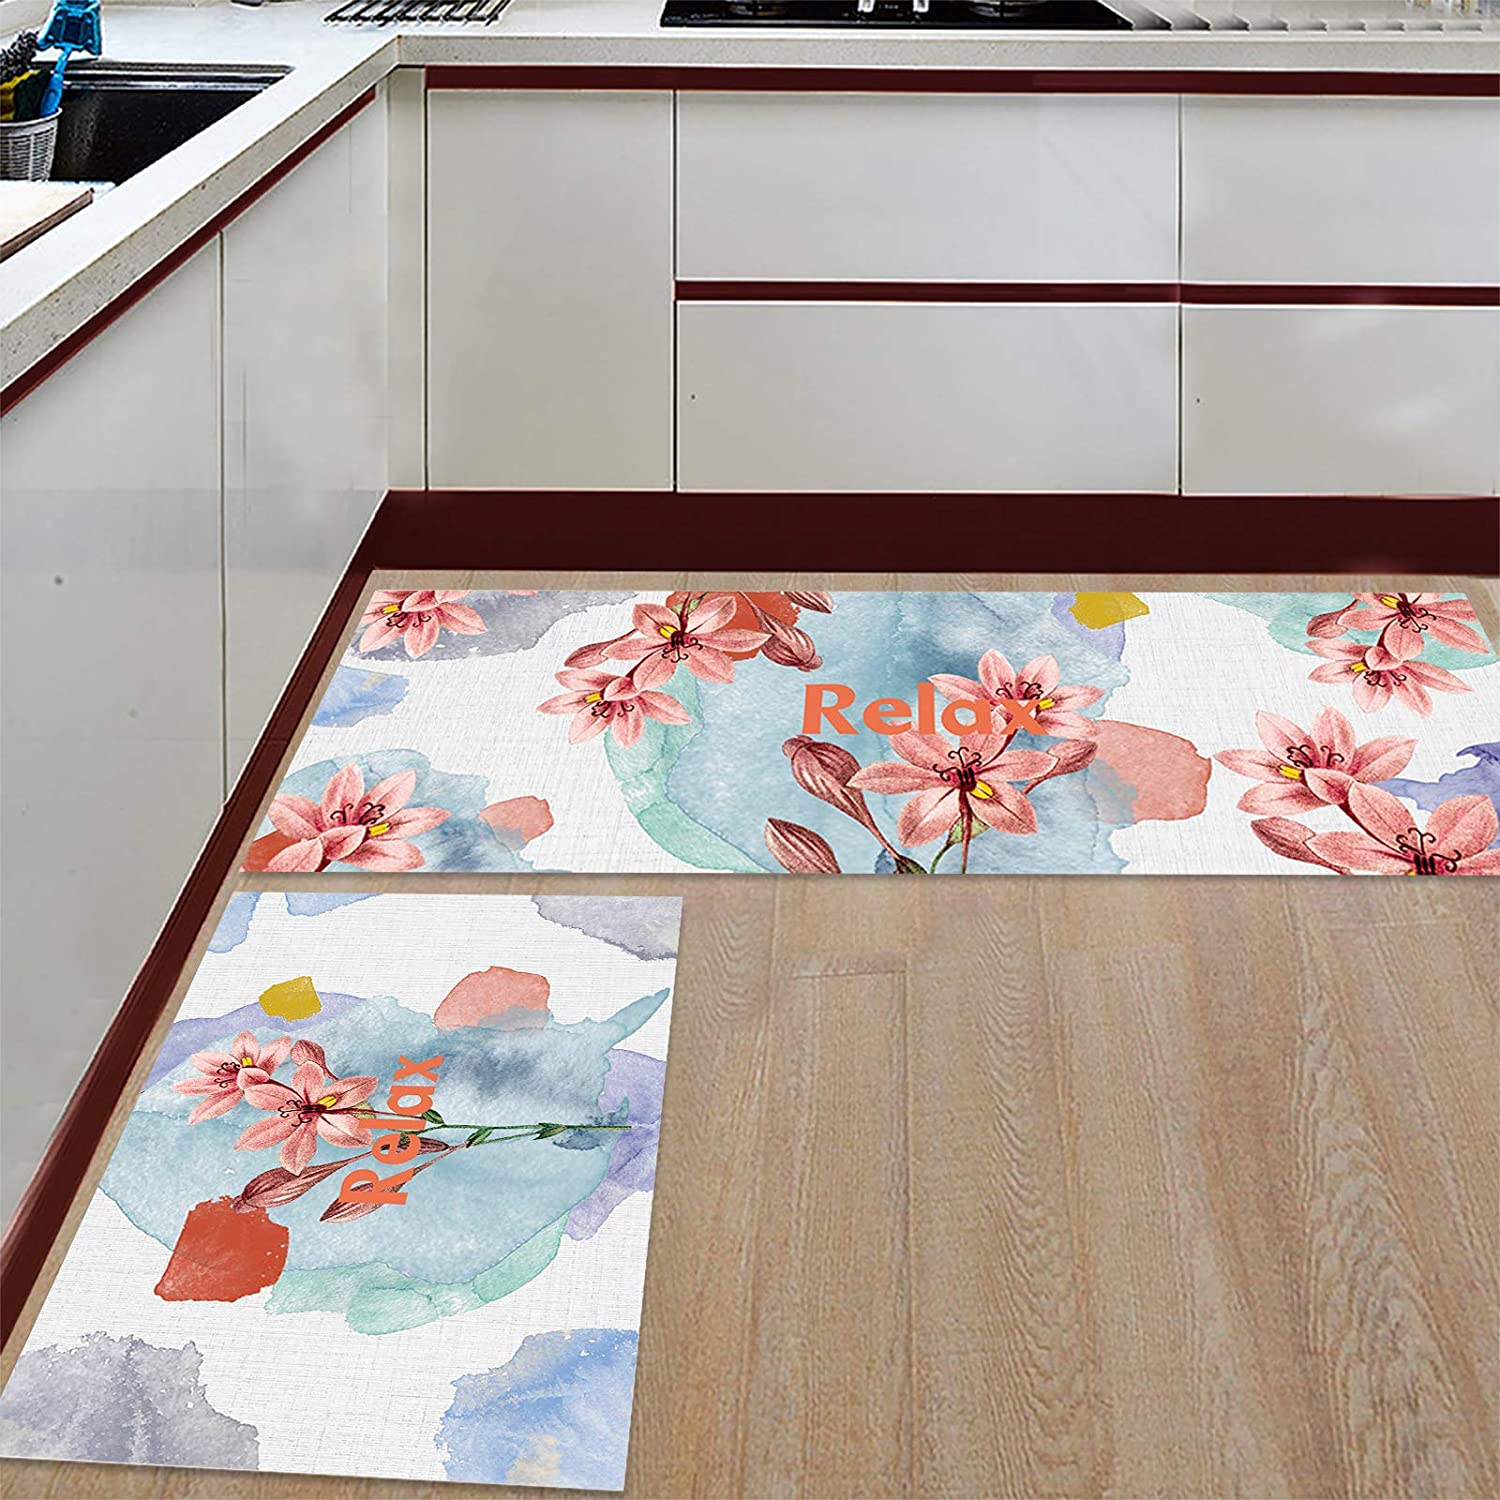 Flowers Kitchen Rugs Sales for sale Set Max 70% OFF 2 Pieces Mats Fl Standing Comfortable